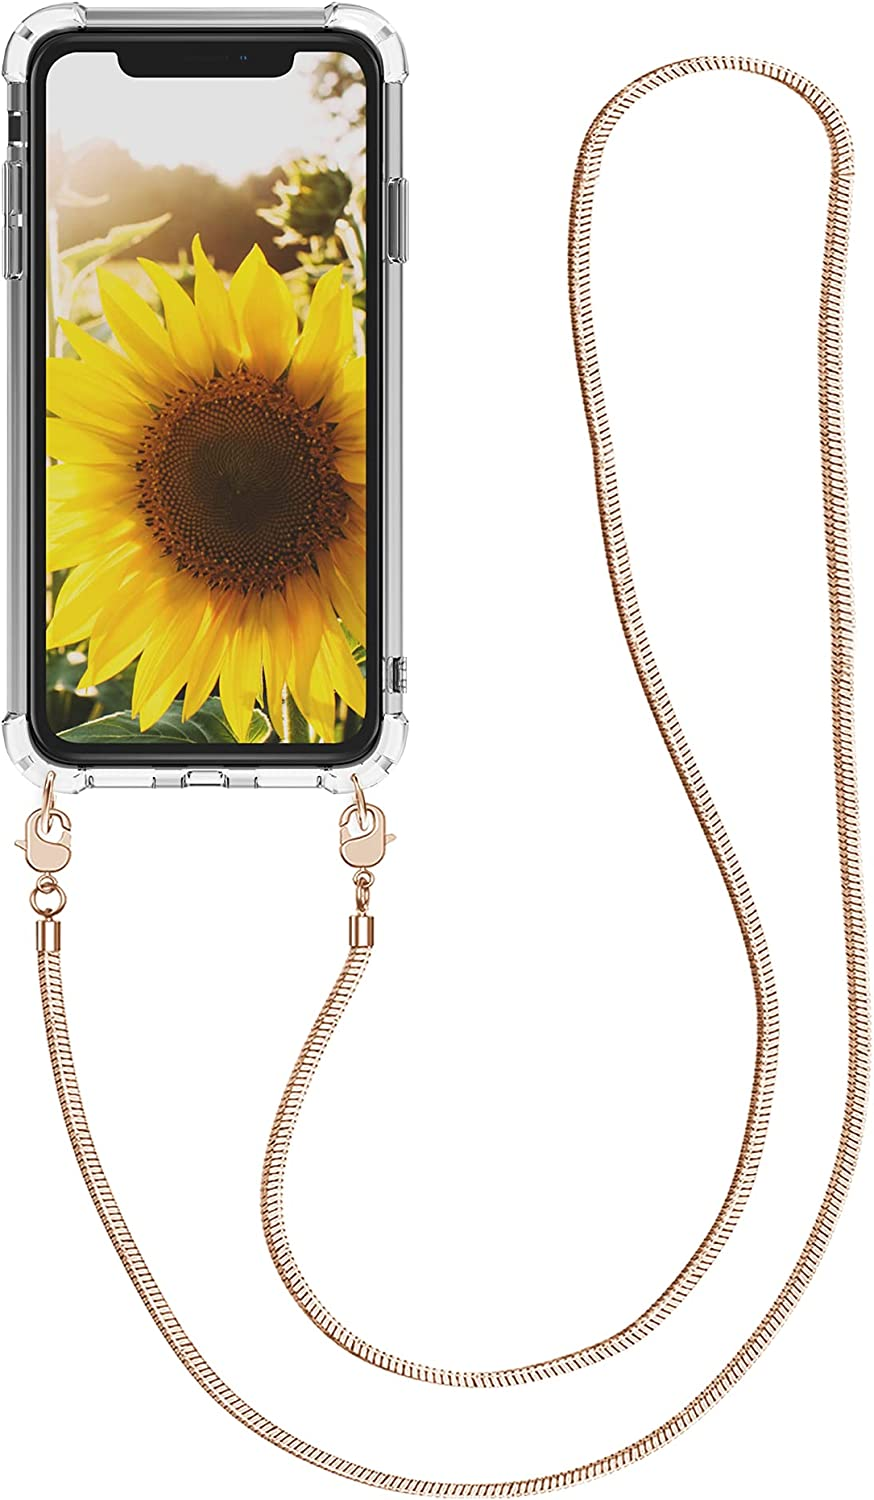 kwmobile Case Compatible with Apple iPhone XR - Crossbody Case Clear Transparent TPU Phone Cover with Metal Chain Strap - Transparent/Rose Gold